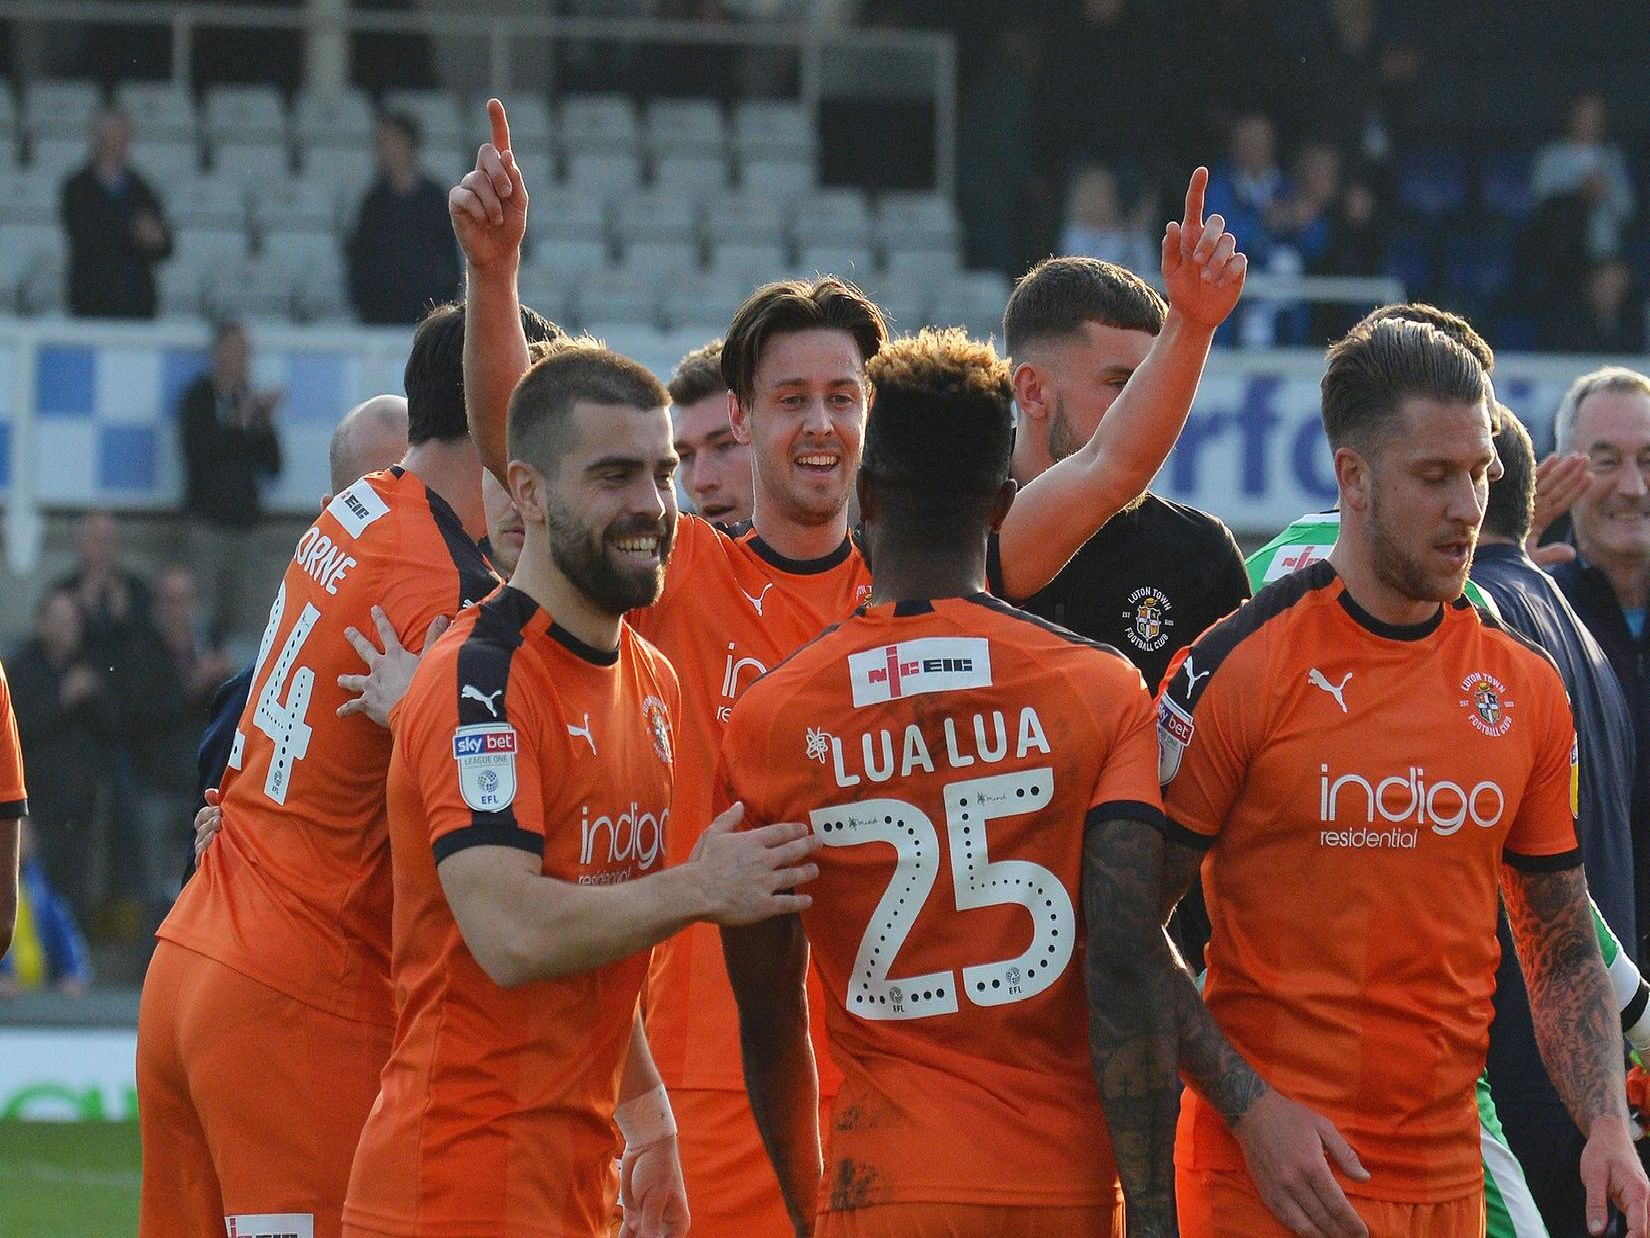 Town celebrate their 2-1 win at Bristol Rovers on Saturday